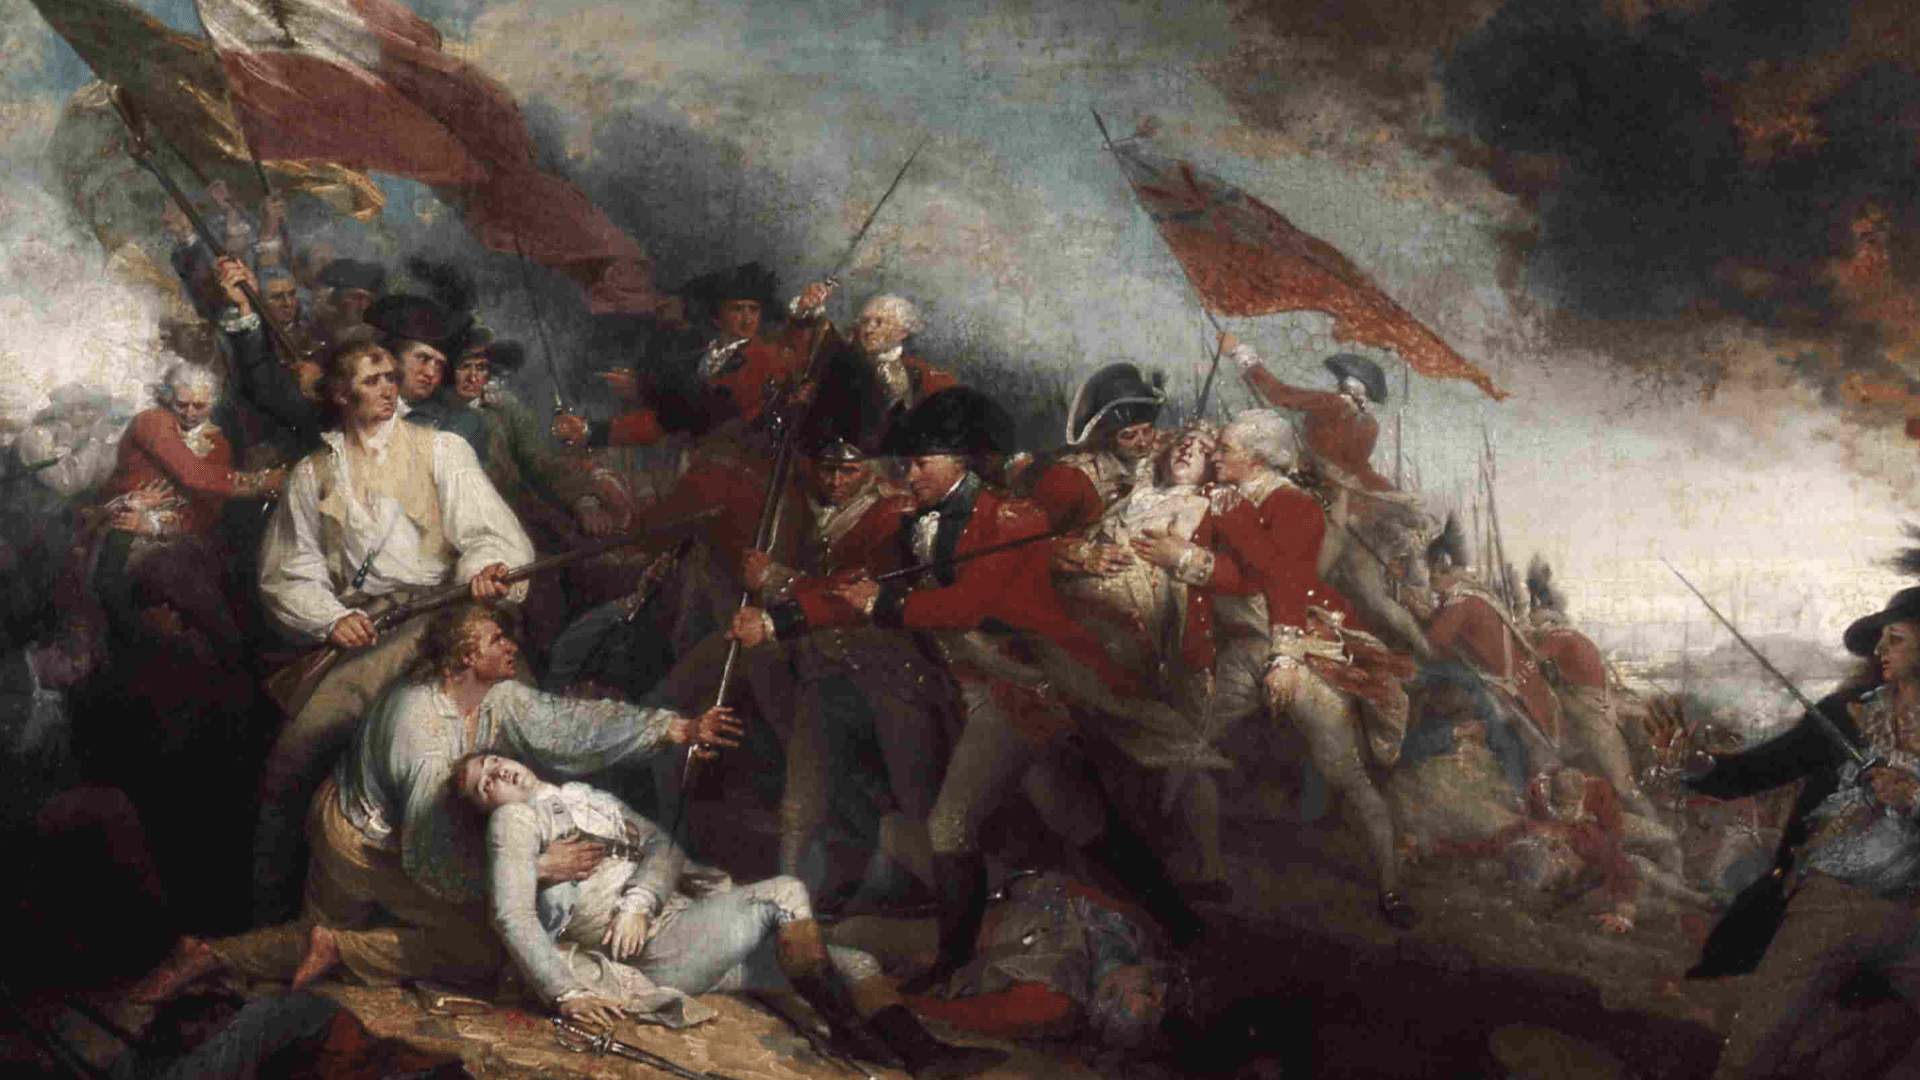 The Death of General Warren at the Battle of Bunker Hill.